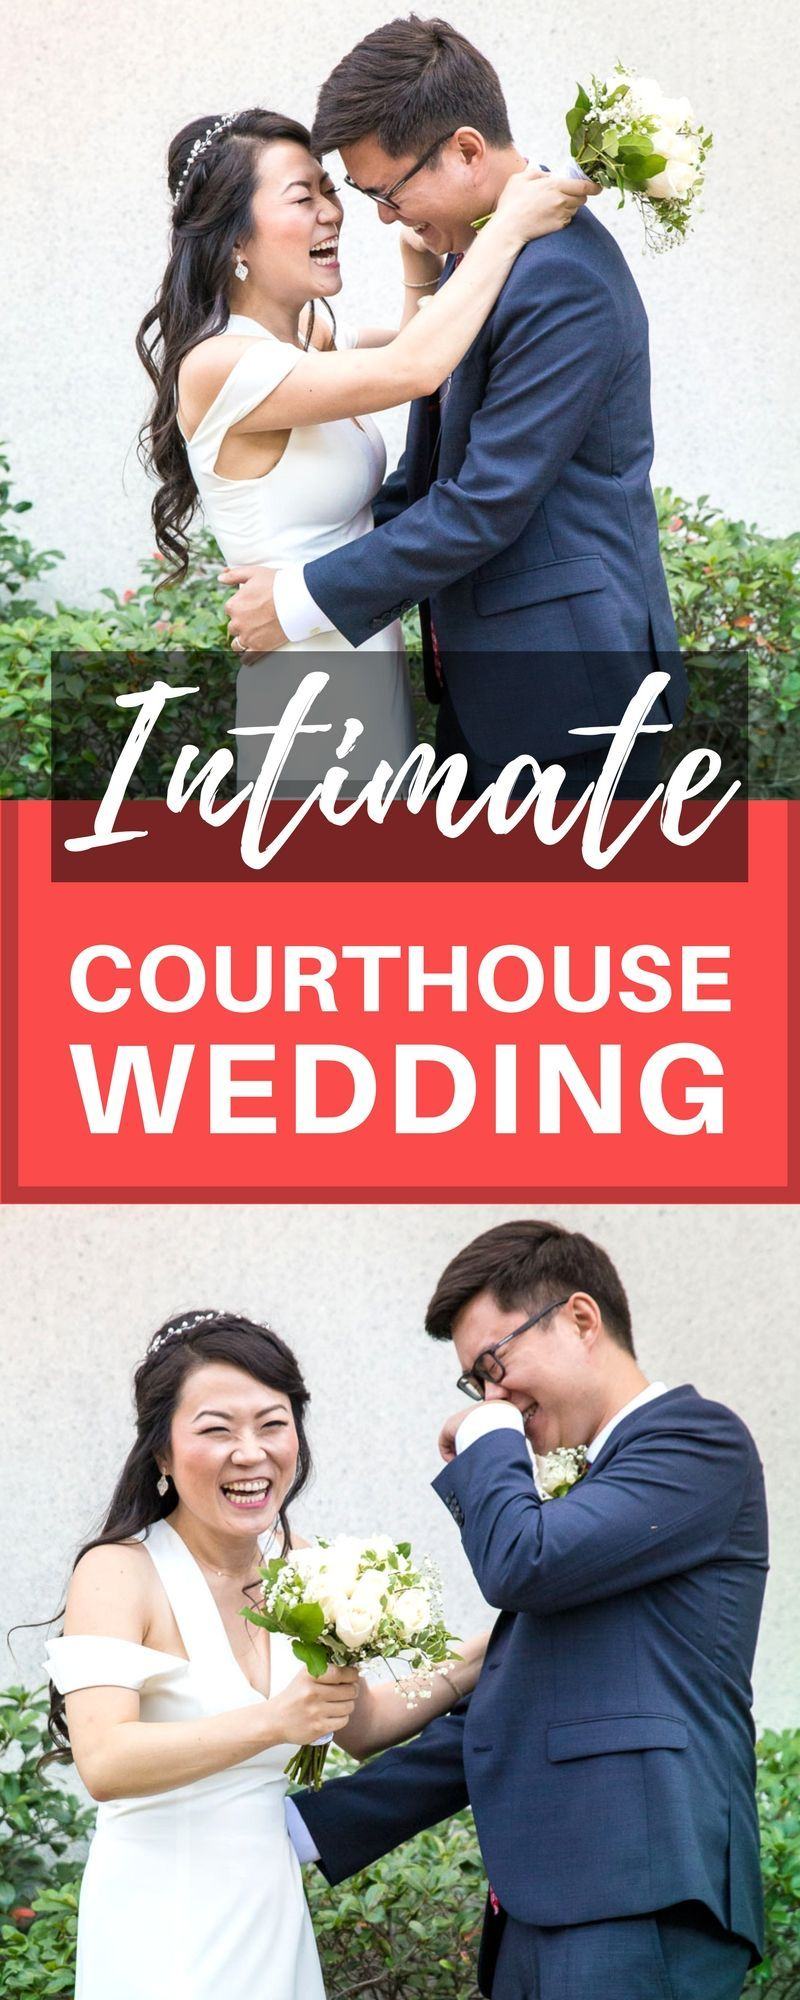 Courthouse wedding photos photography courthouse wedding ideas